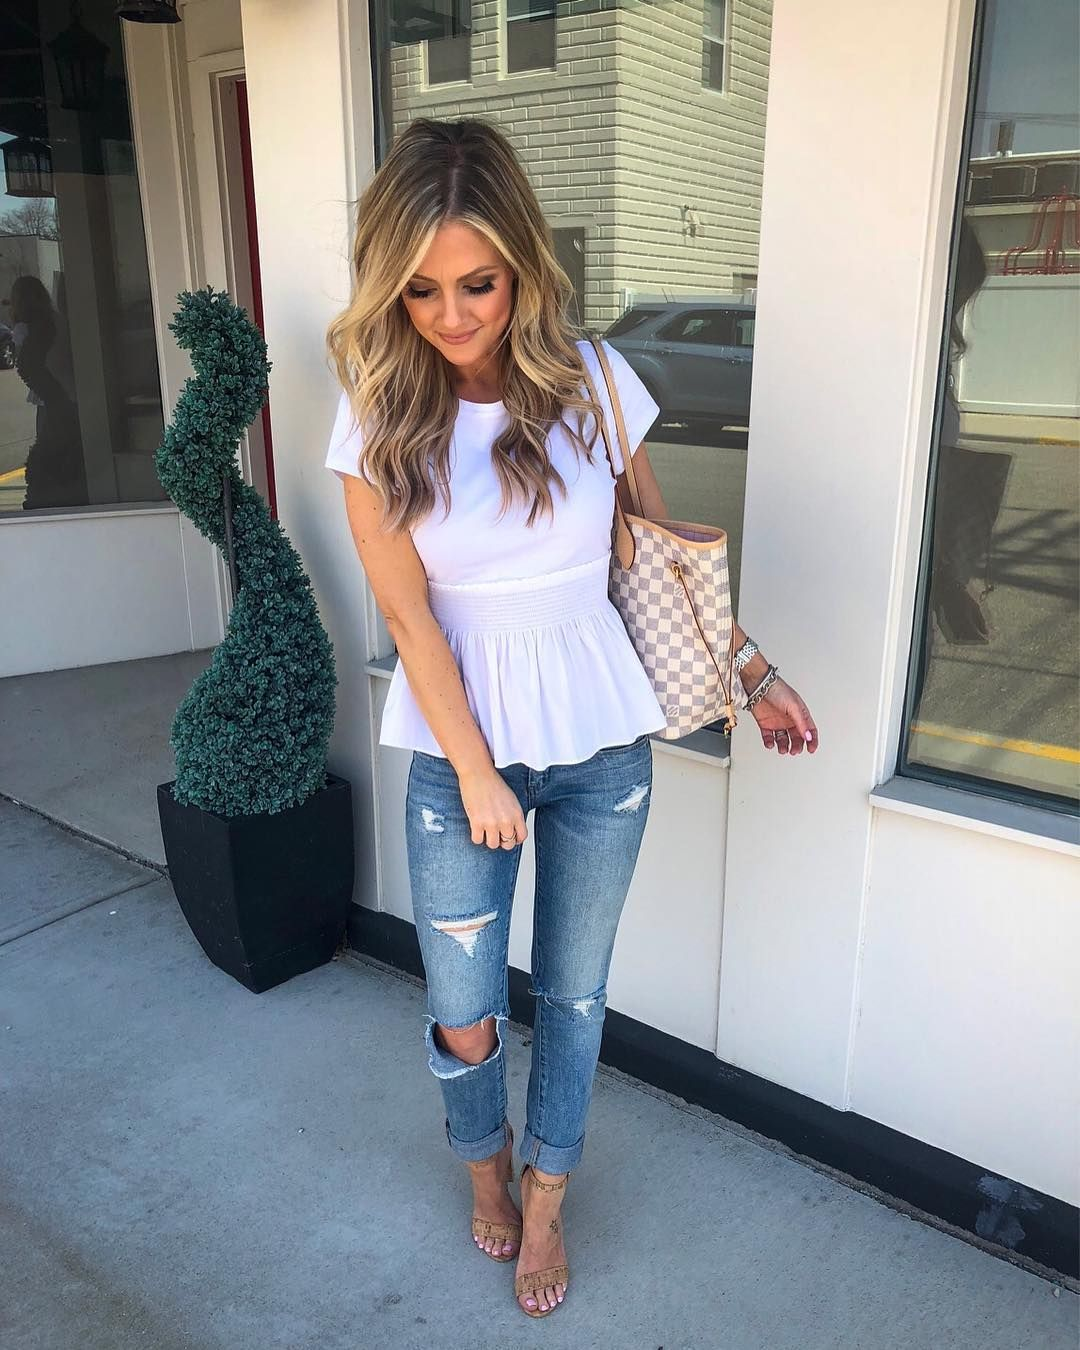 f912d9d7d5 What an effortless chic outfit. A peplum top is the perfect way to make  everyone